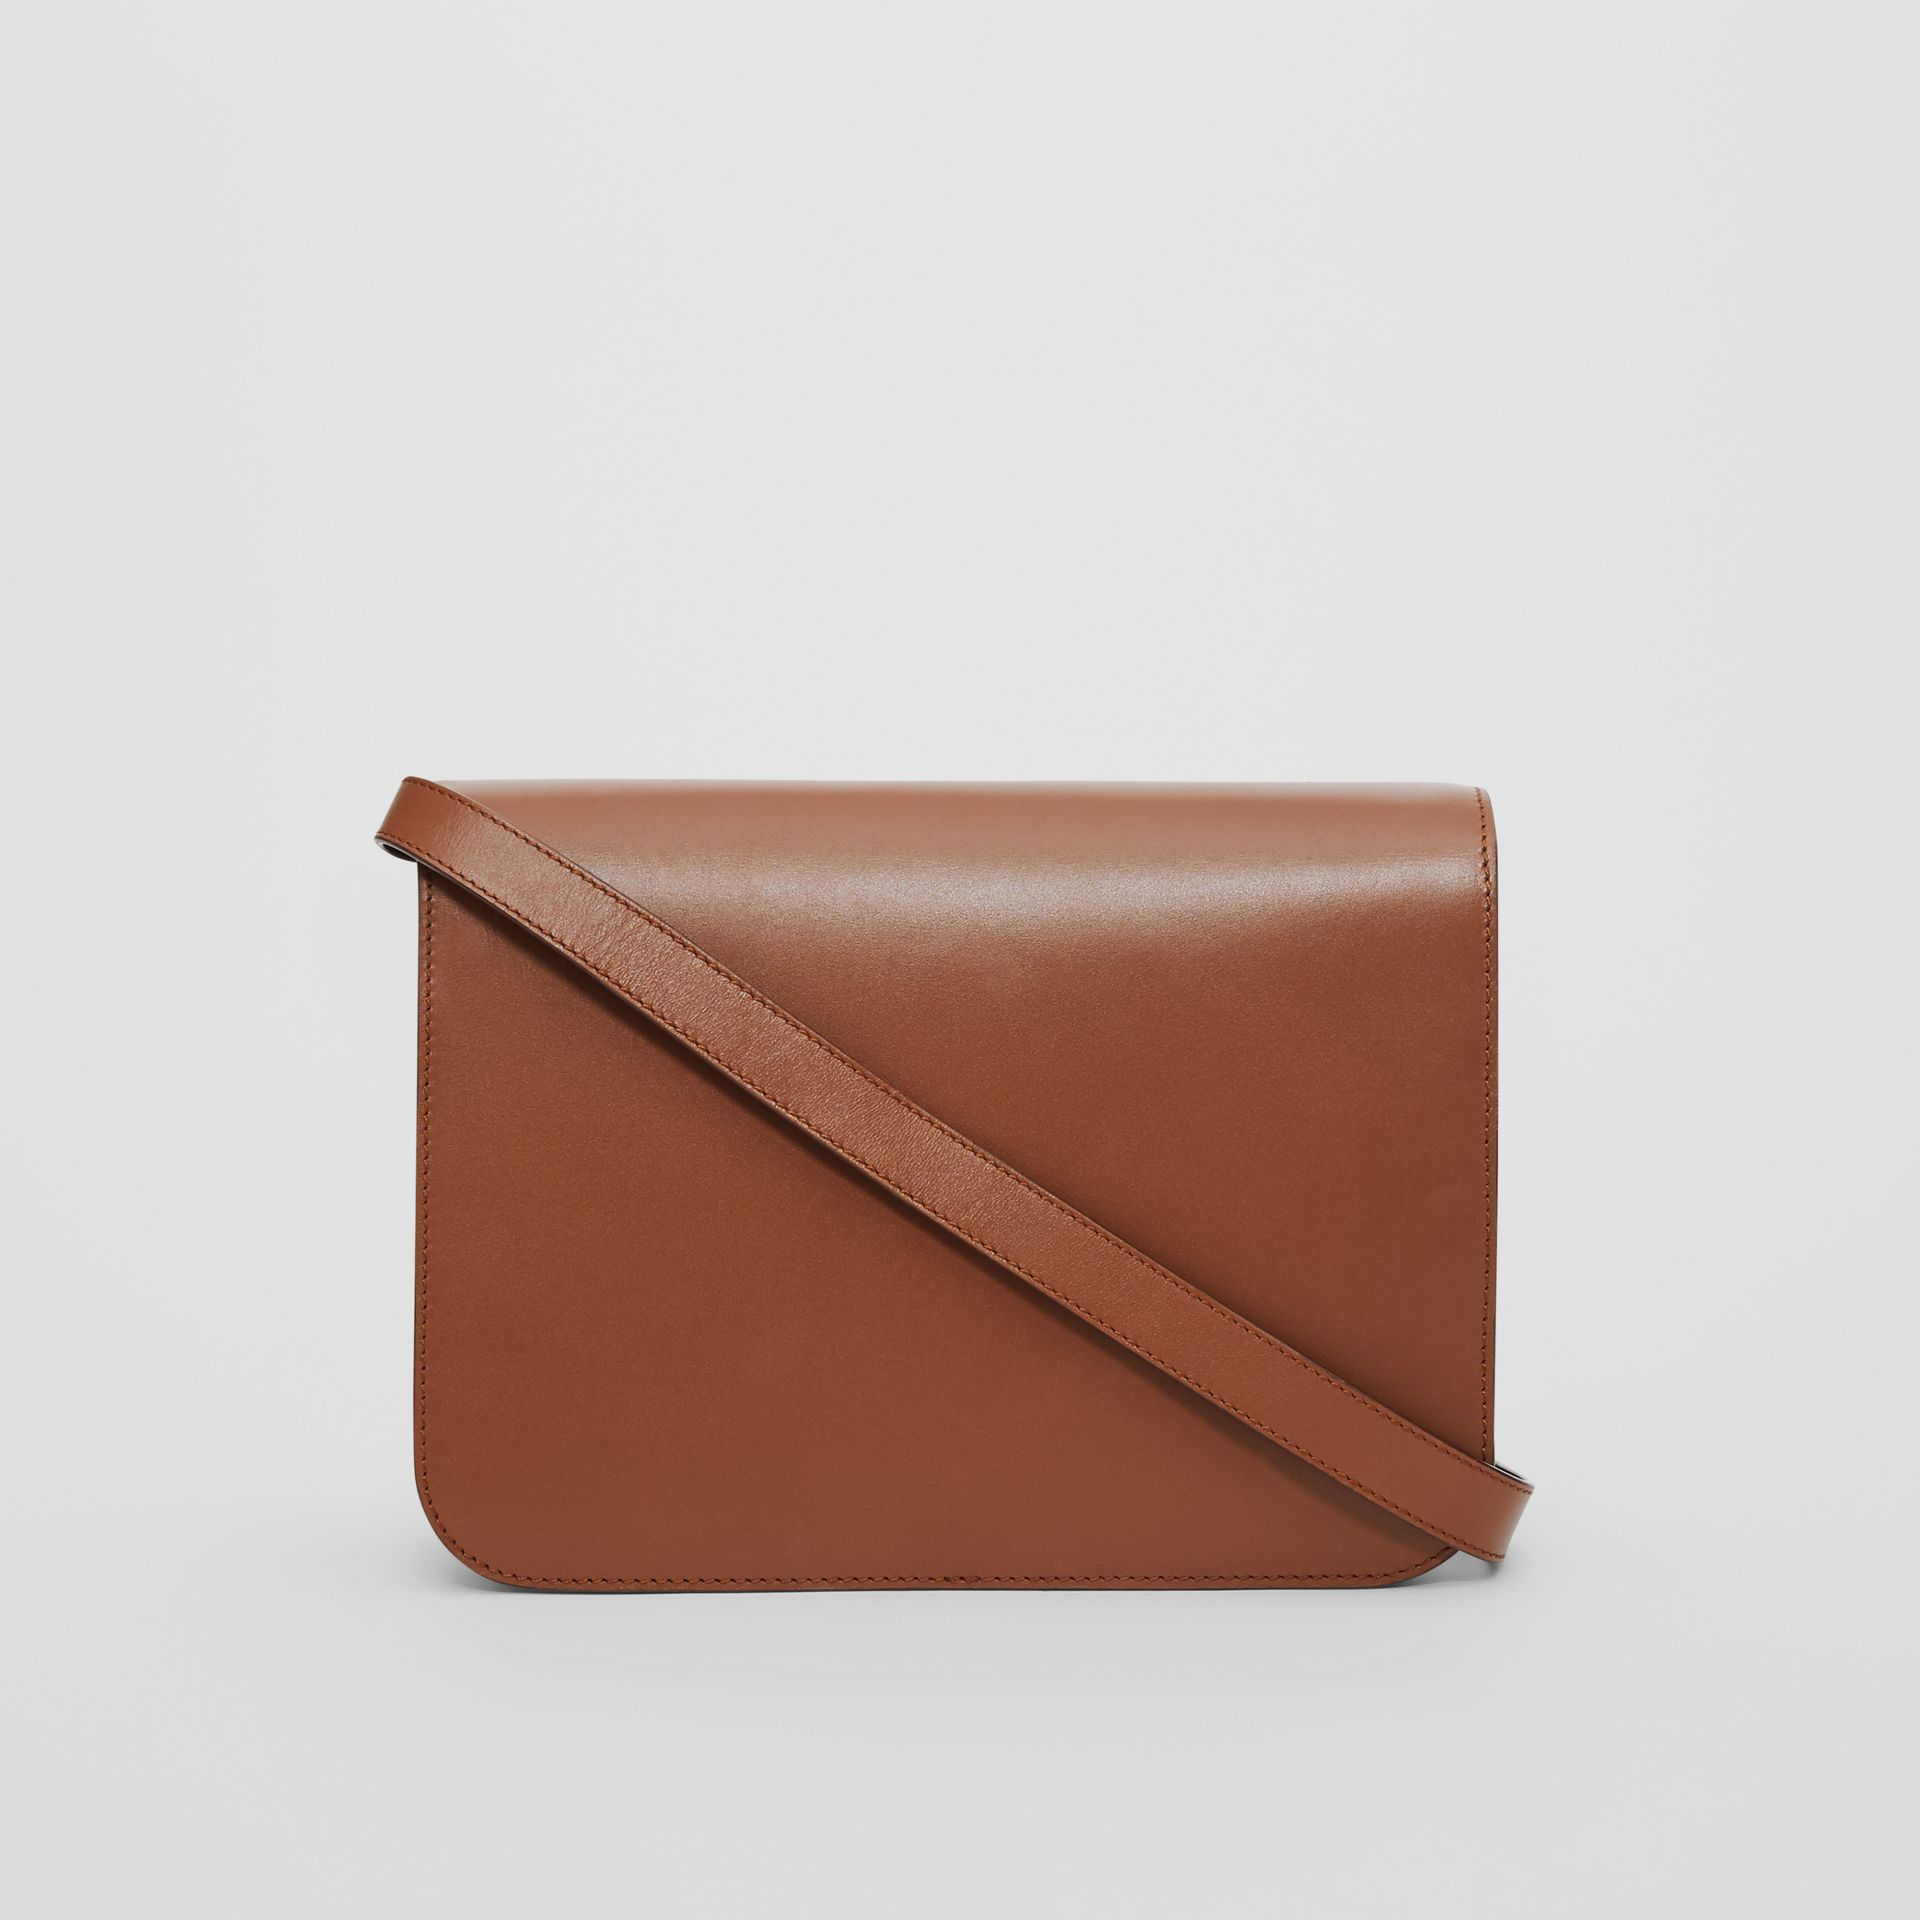 Medium Leather TB Bag in Malt Brown - Women | Burberry United States - gallery image 7